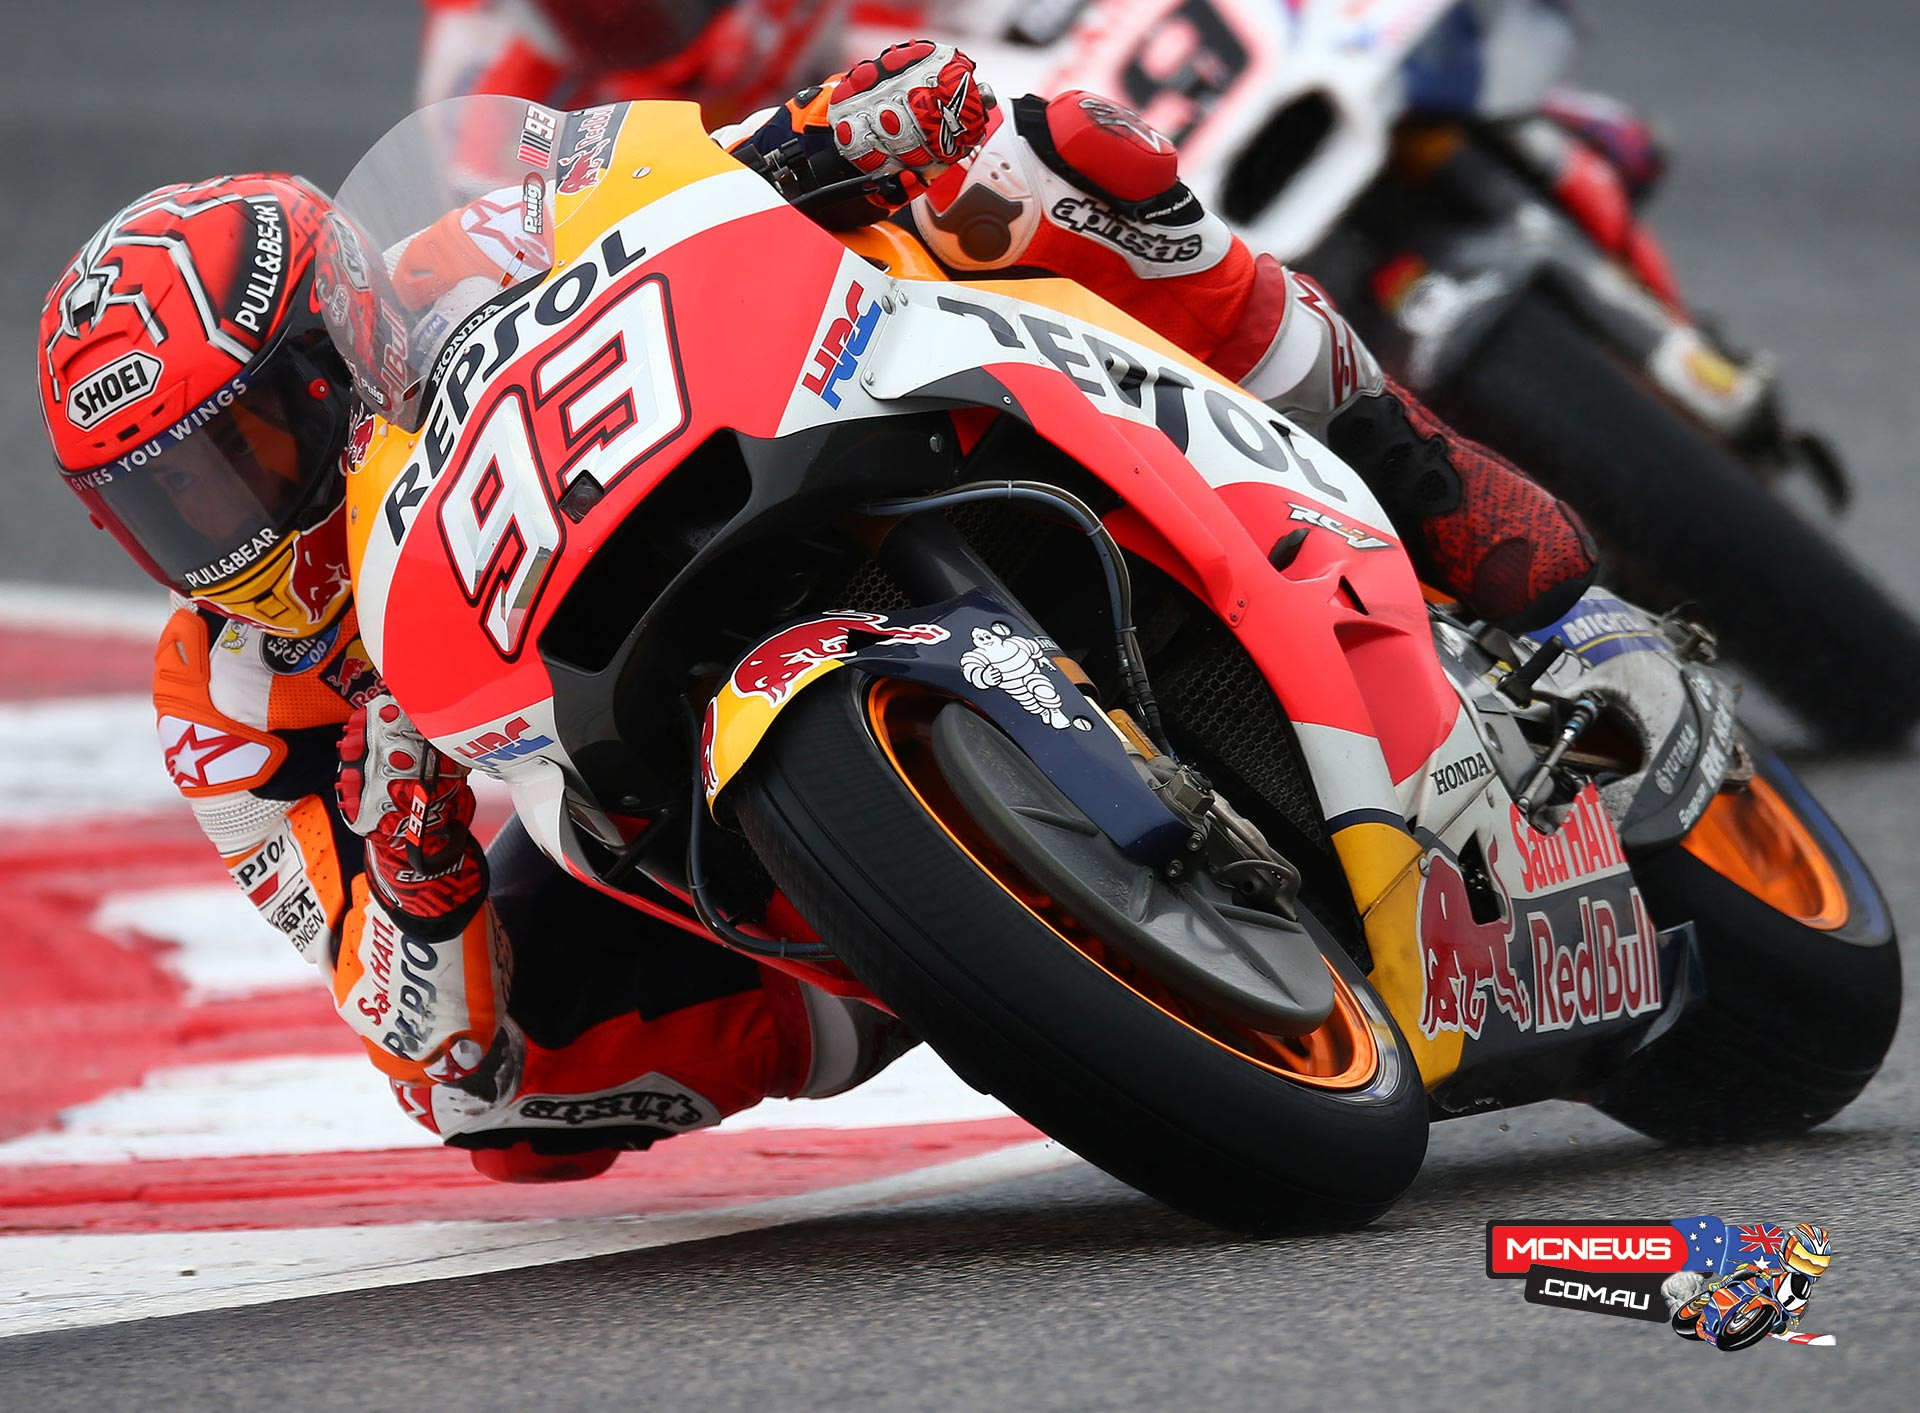 Brembo Breakthrough Wet Win On Carbon Brakes Motorcycle News Sport And Reviews